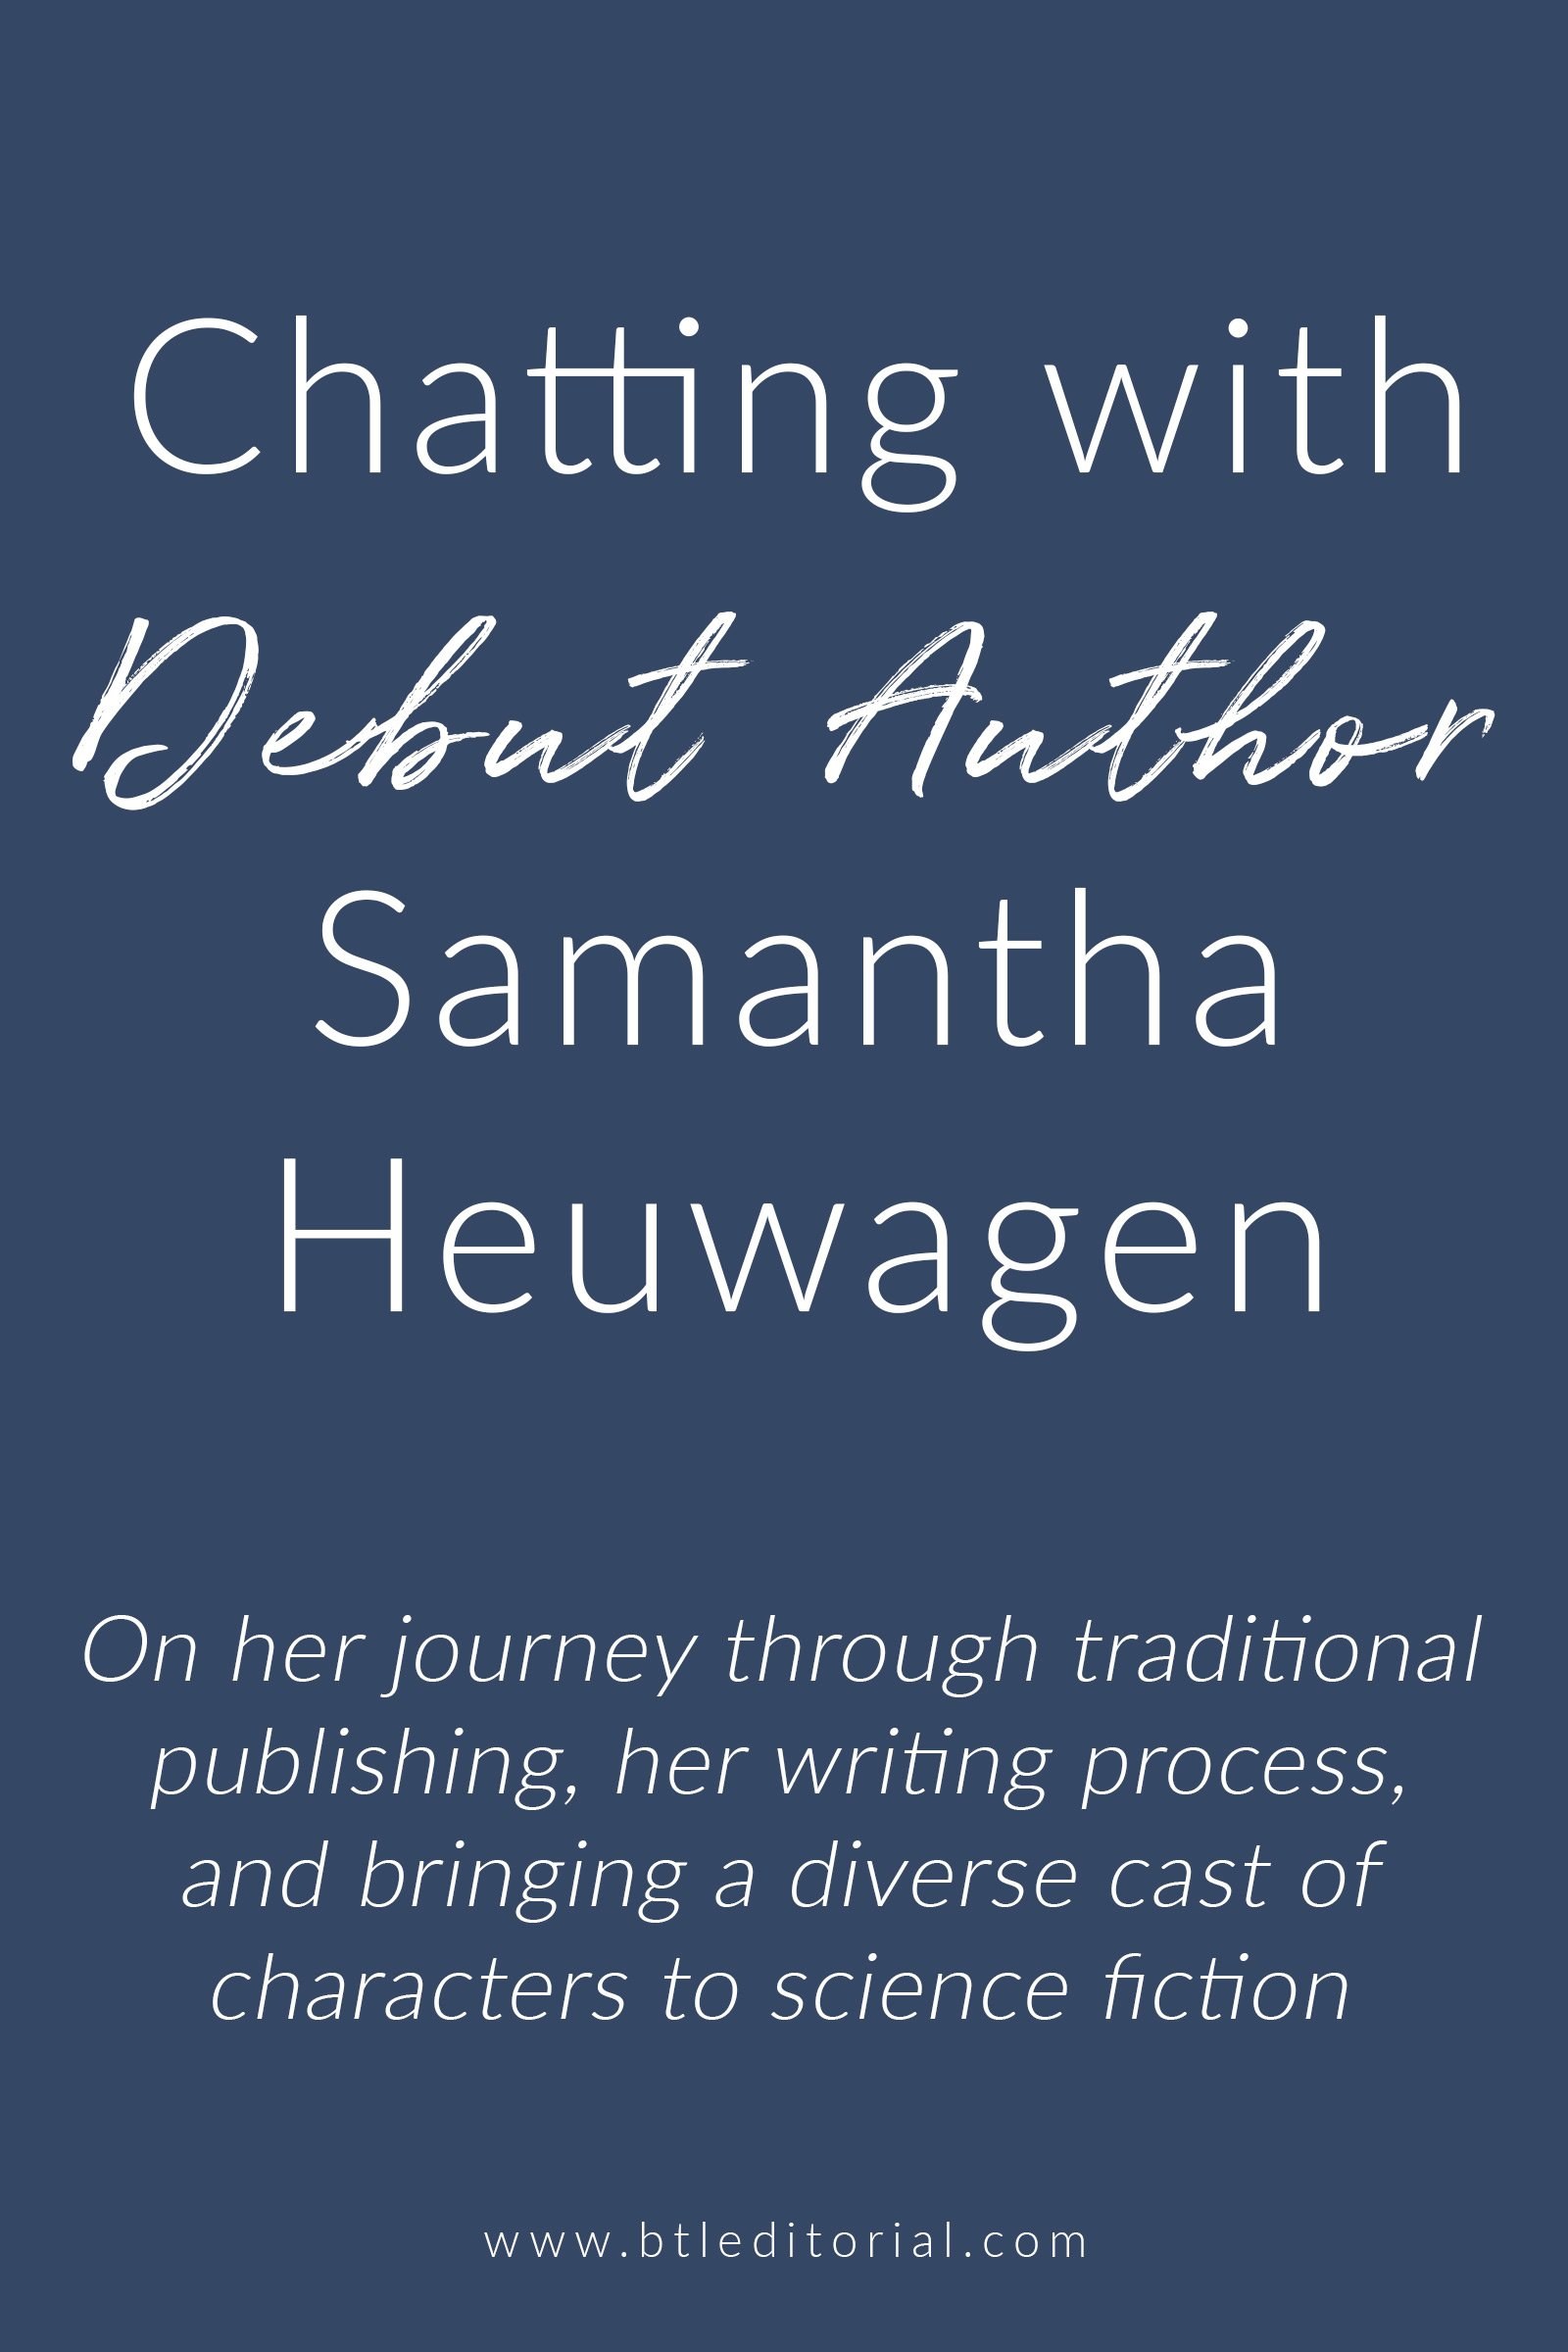 Author Samantha Heuwagen talks all things publishing, the writing process, her writing journey, writing tips, and bringing a diverse cast to science-fiction/sci-fi